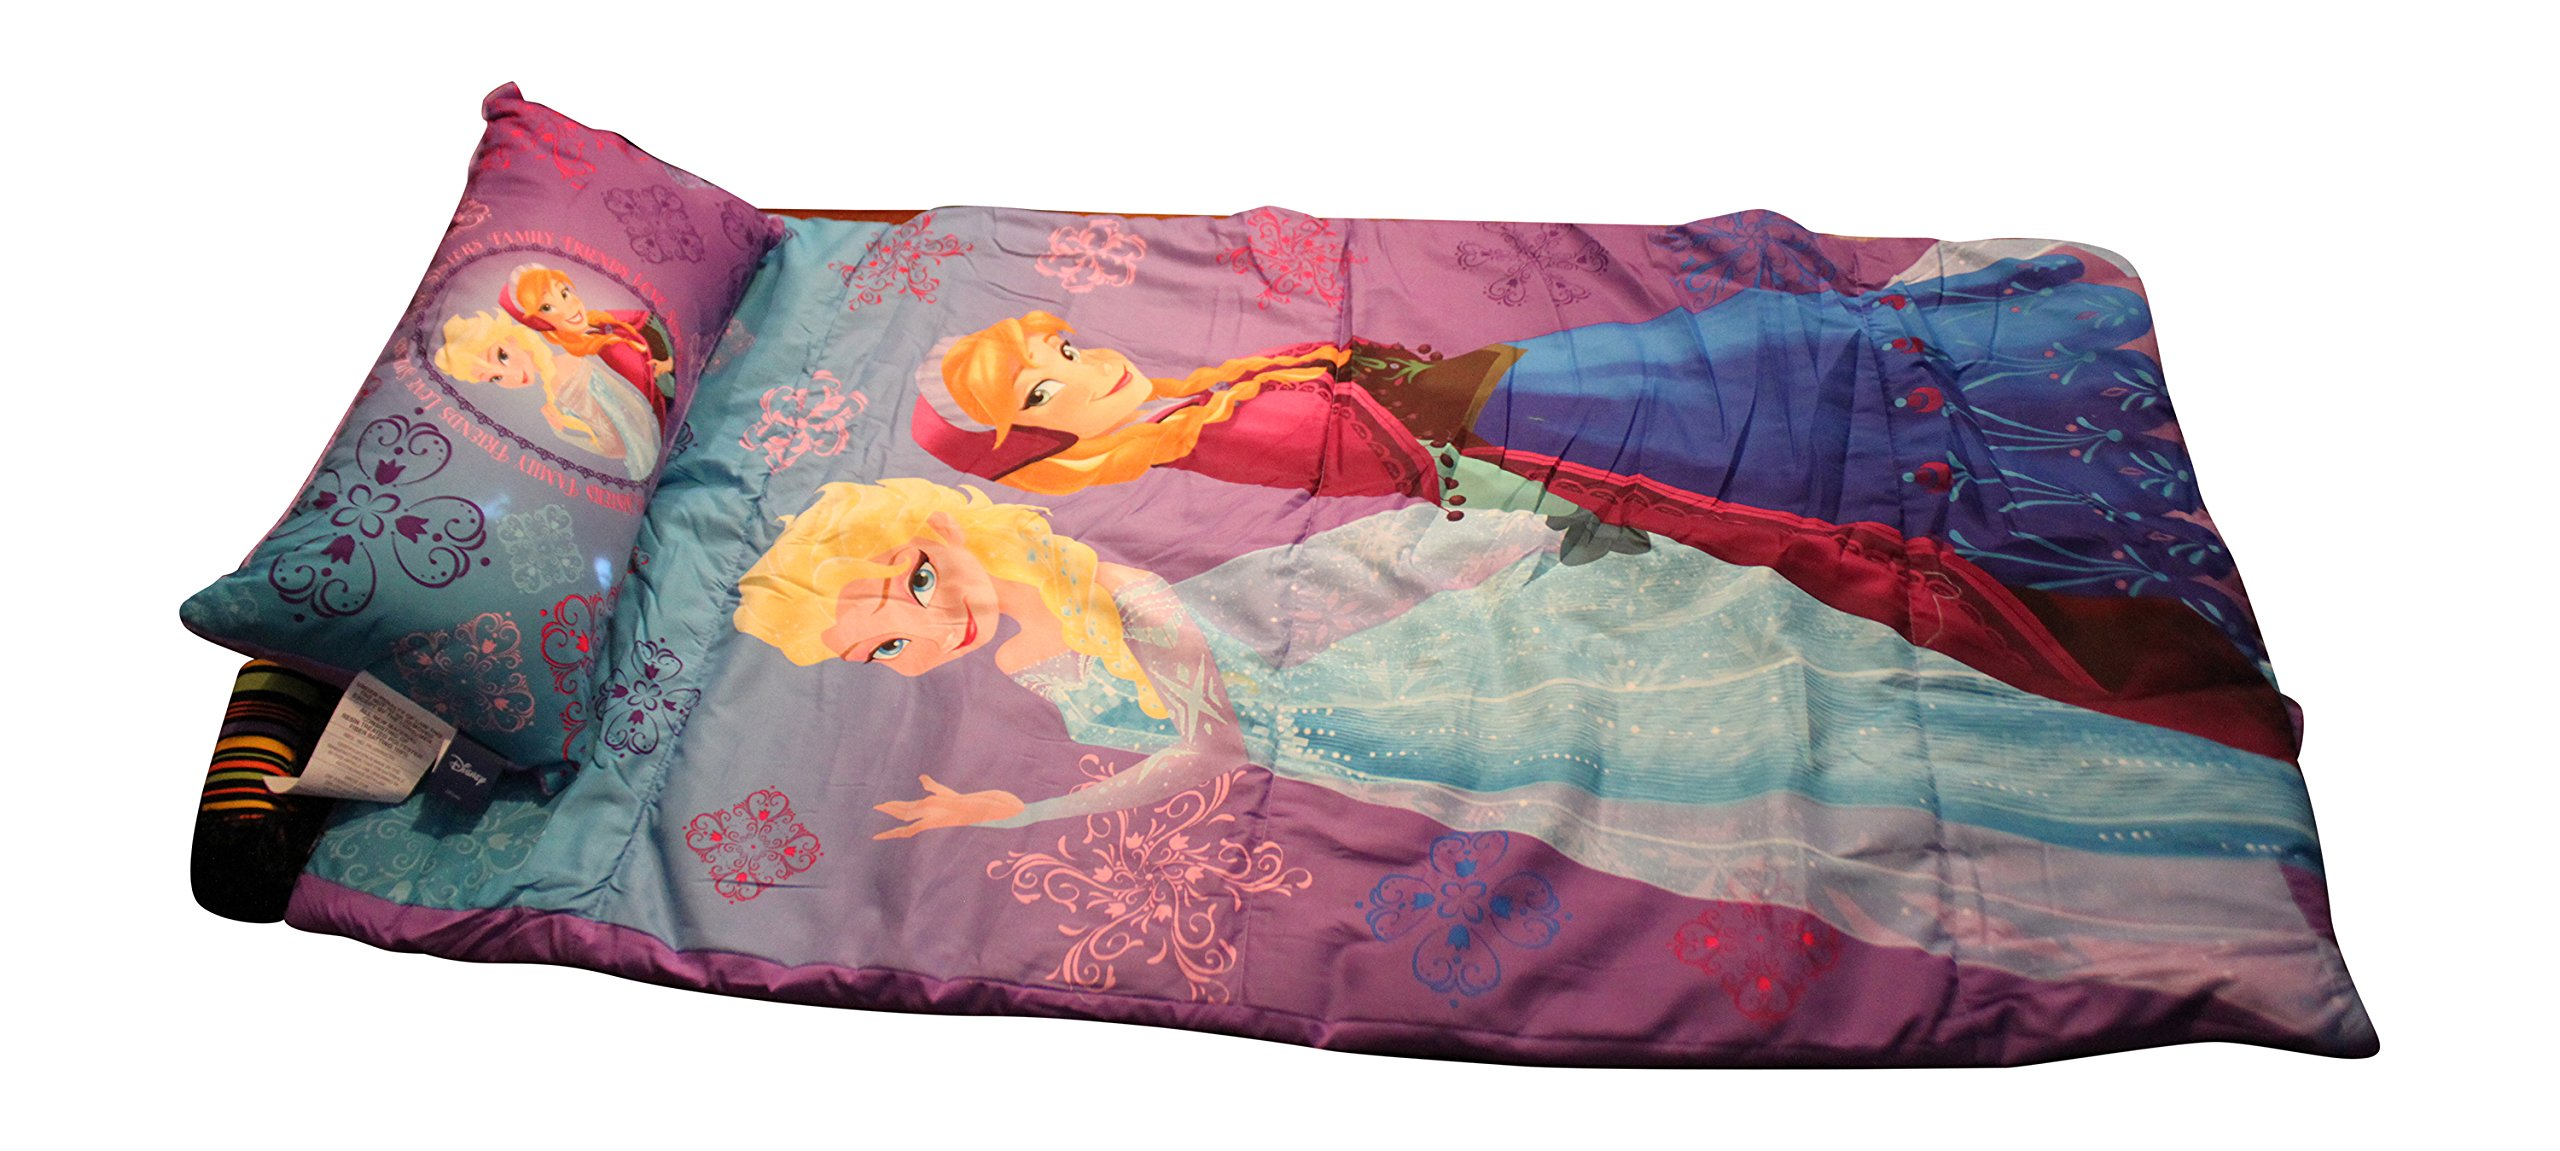 Disney Frozen Anna and Elsa Slumber Bag with Pillow and Bonus Reusable Storage Bin